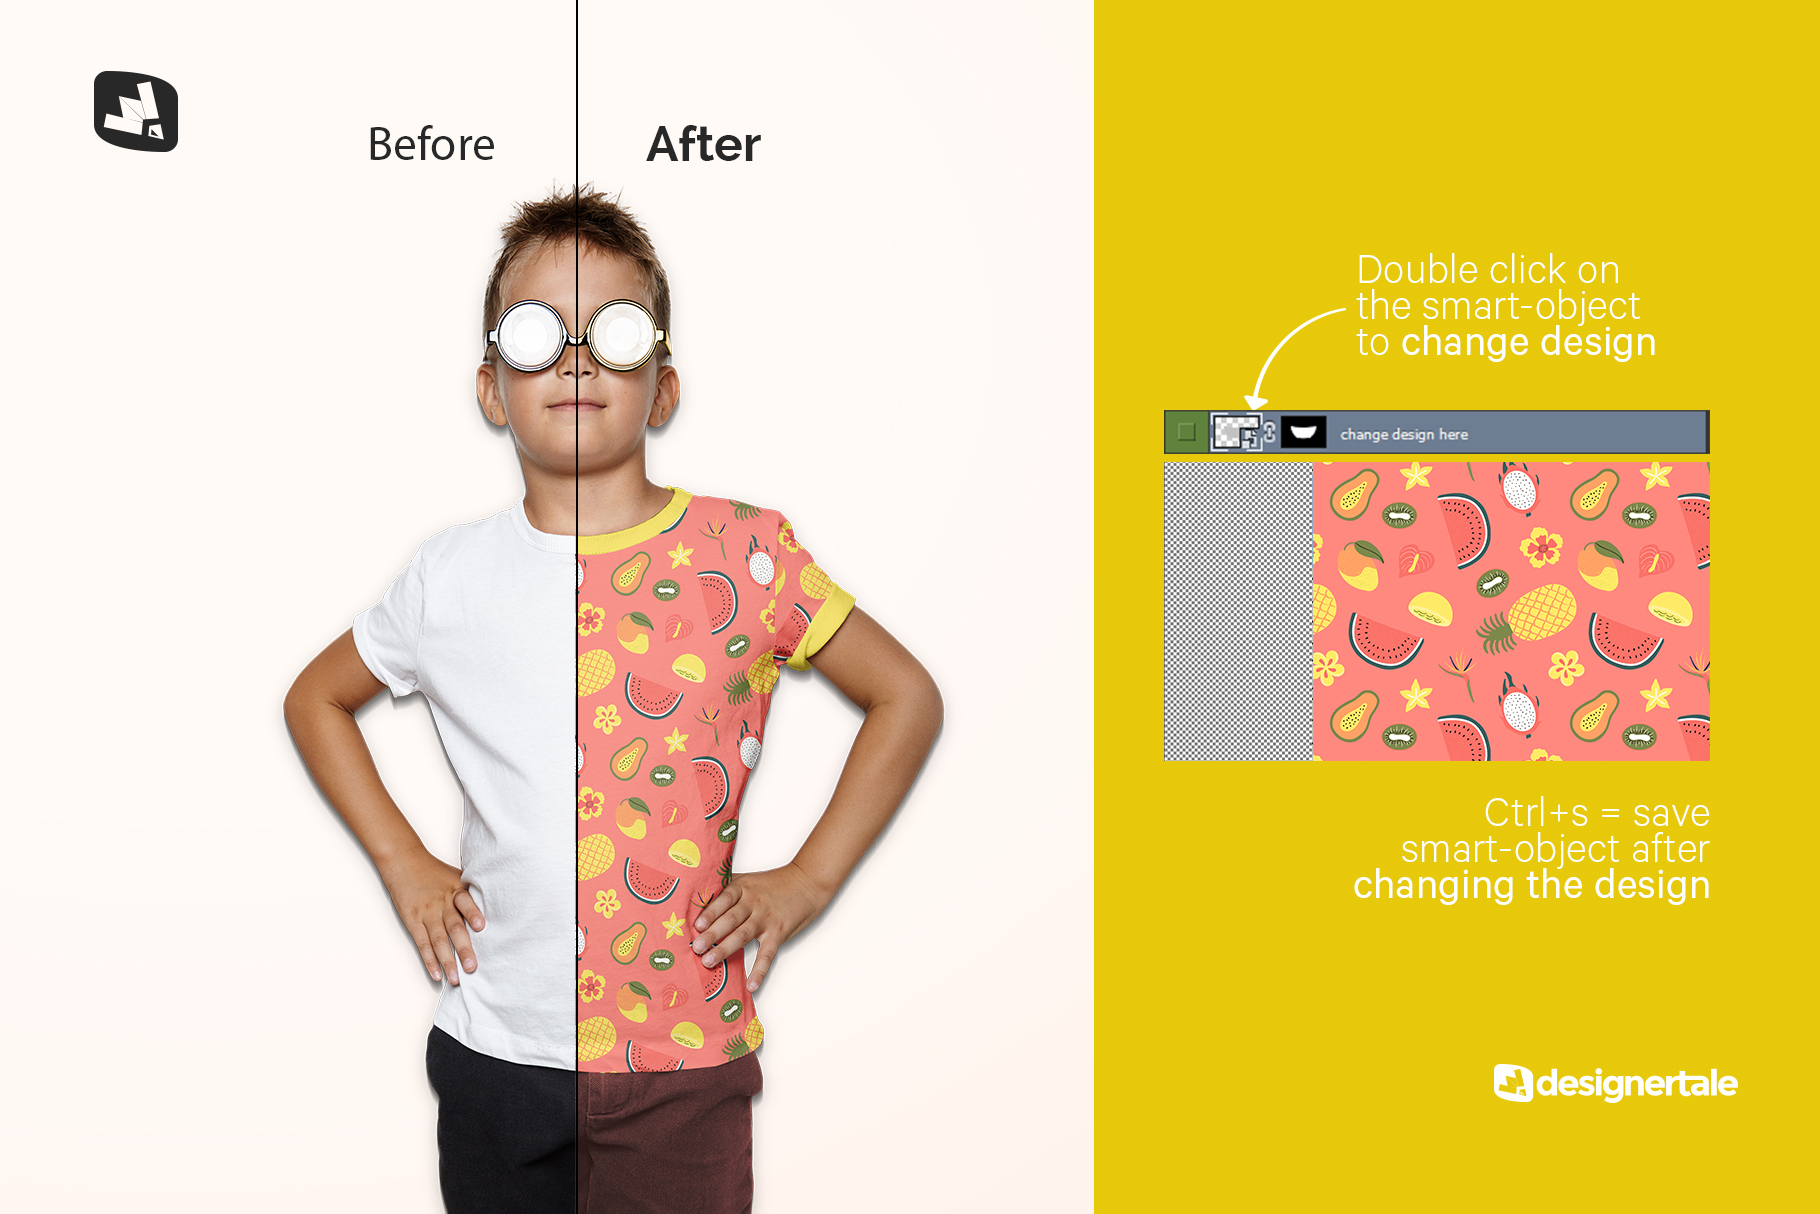 how to change design of the kid's everyday outfit mockup with sunglasses